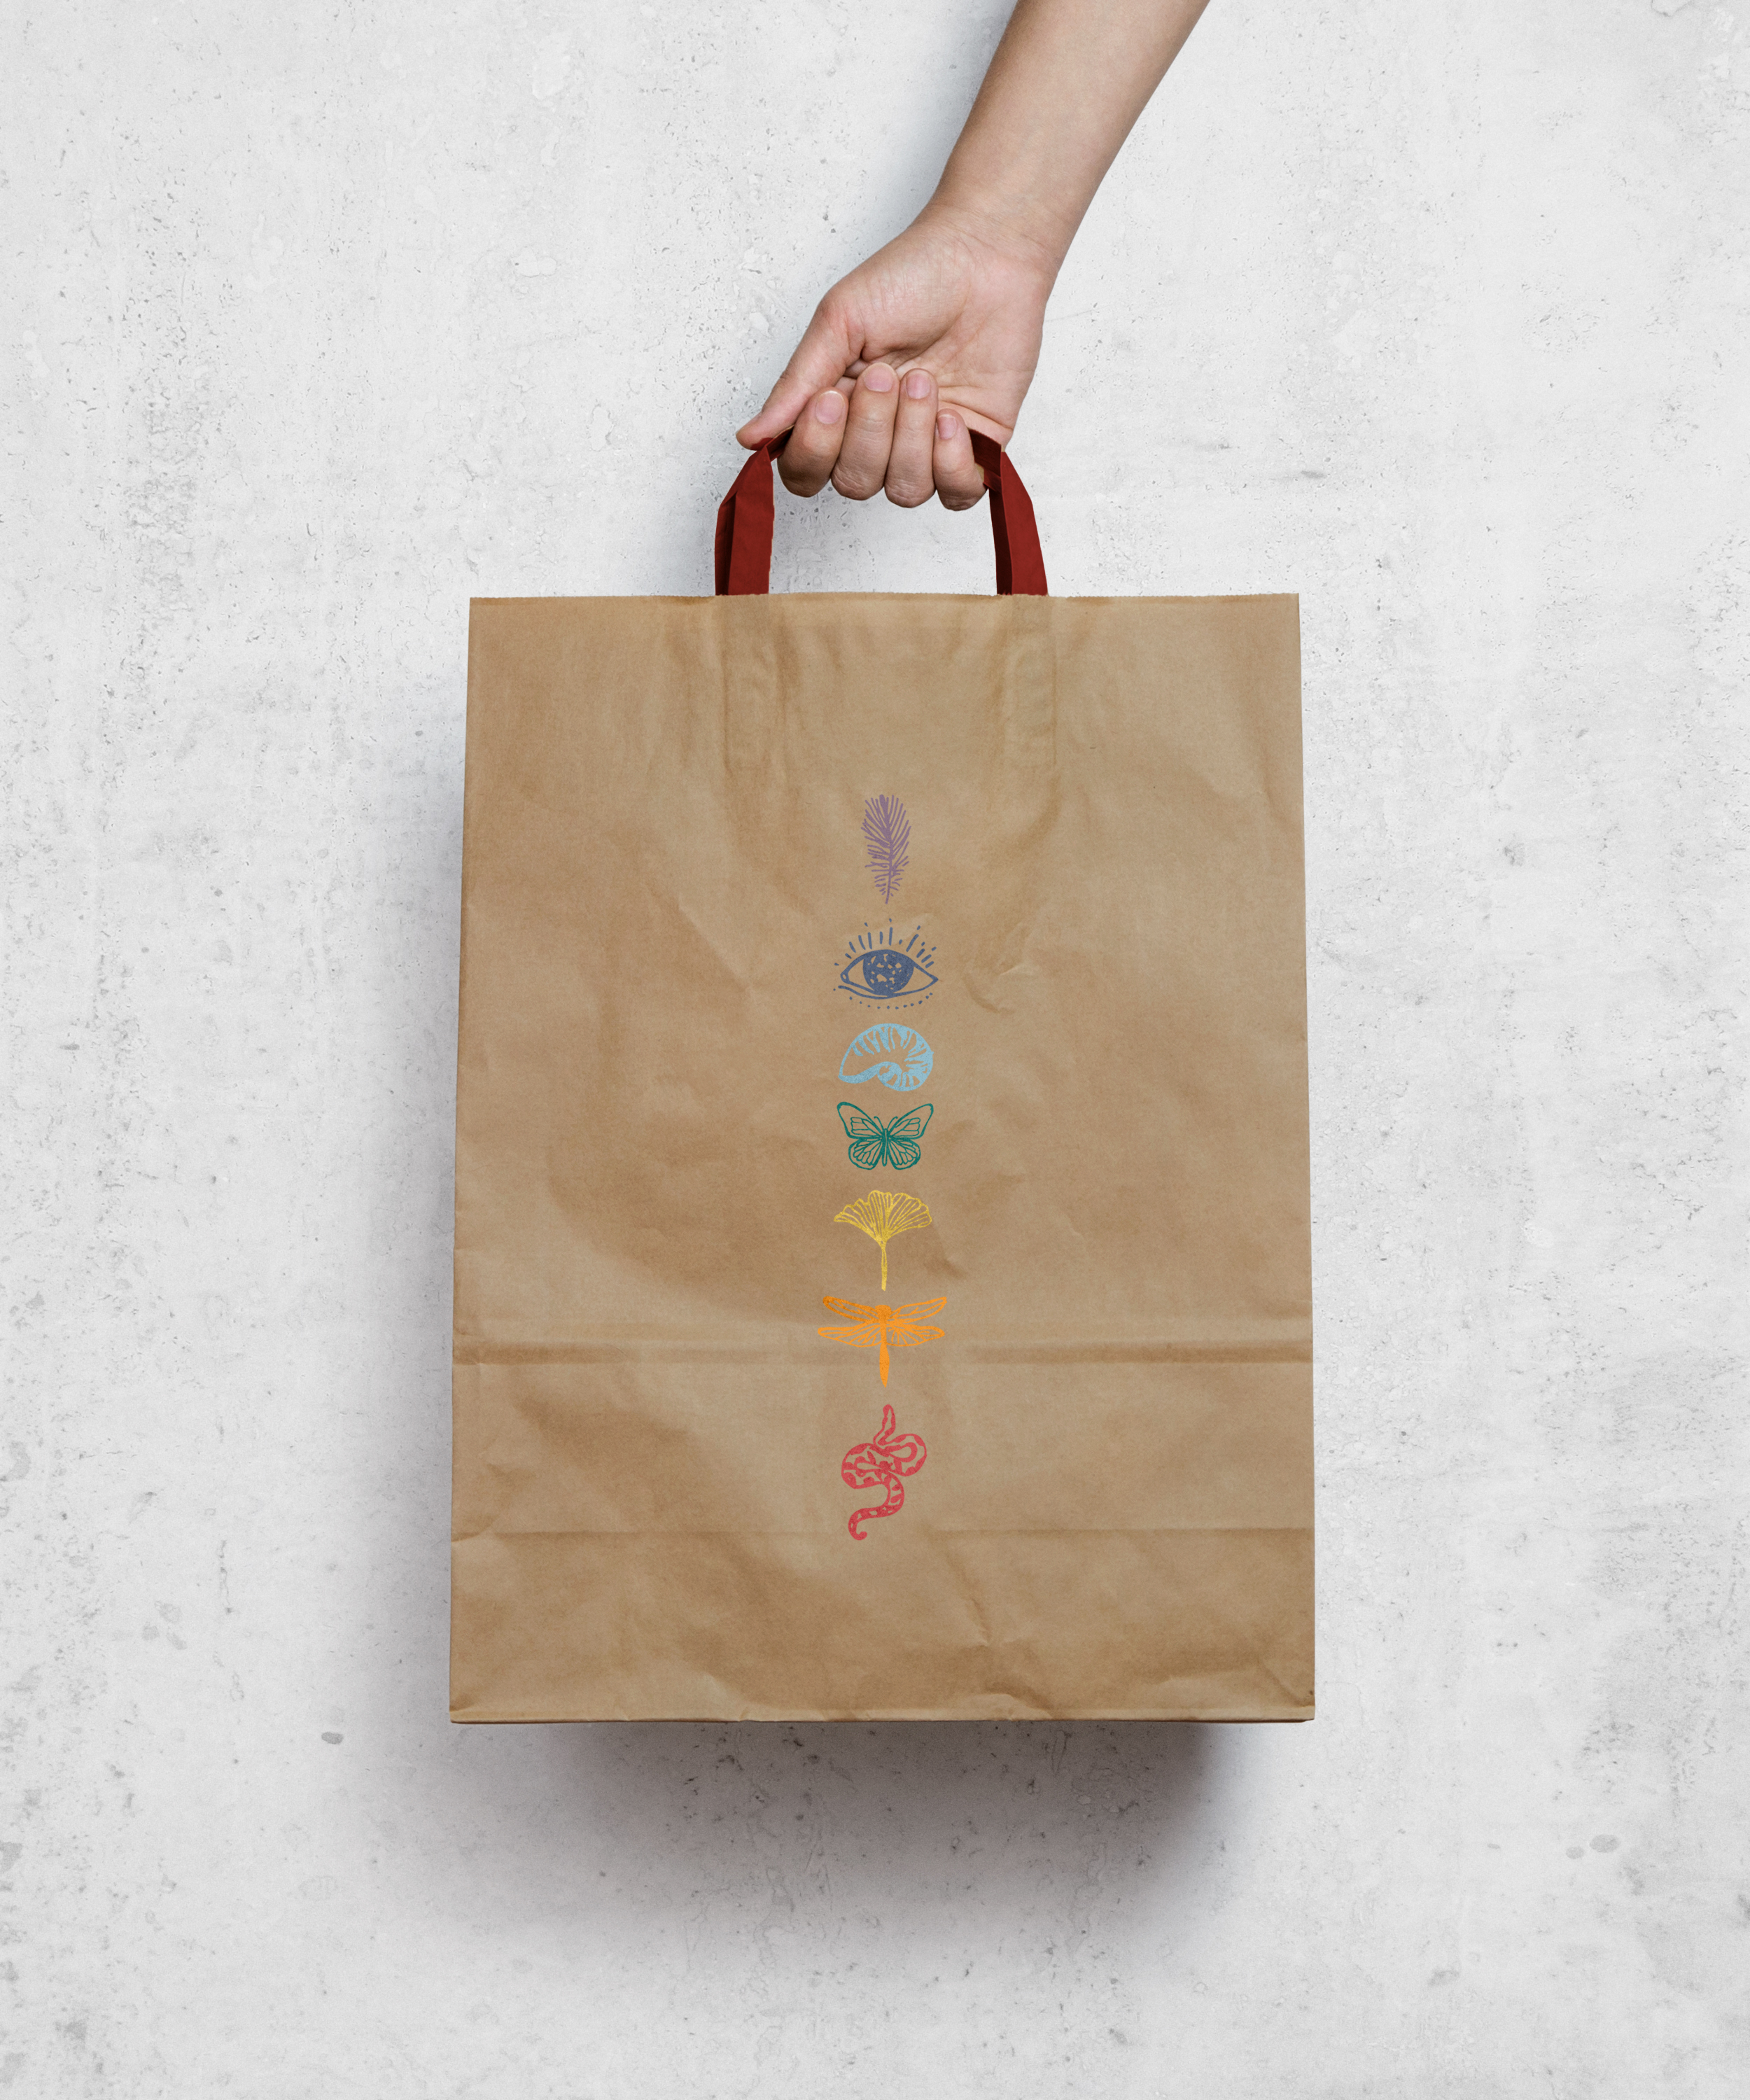 11.06_R1_Red Handle Brown Paper Bag MockUp_Front.jpg